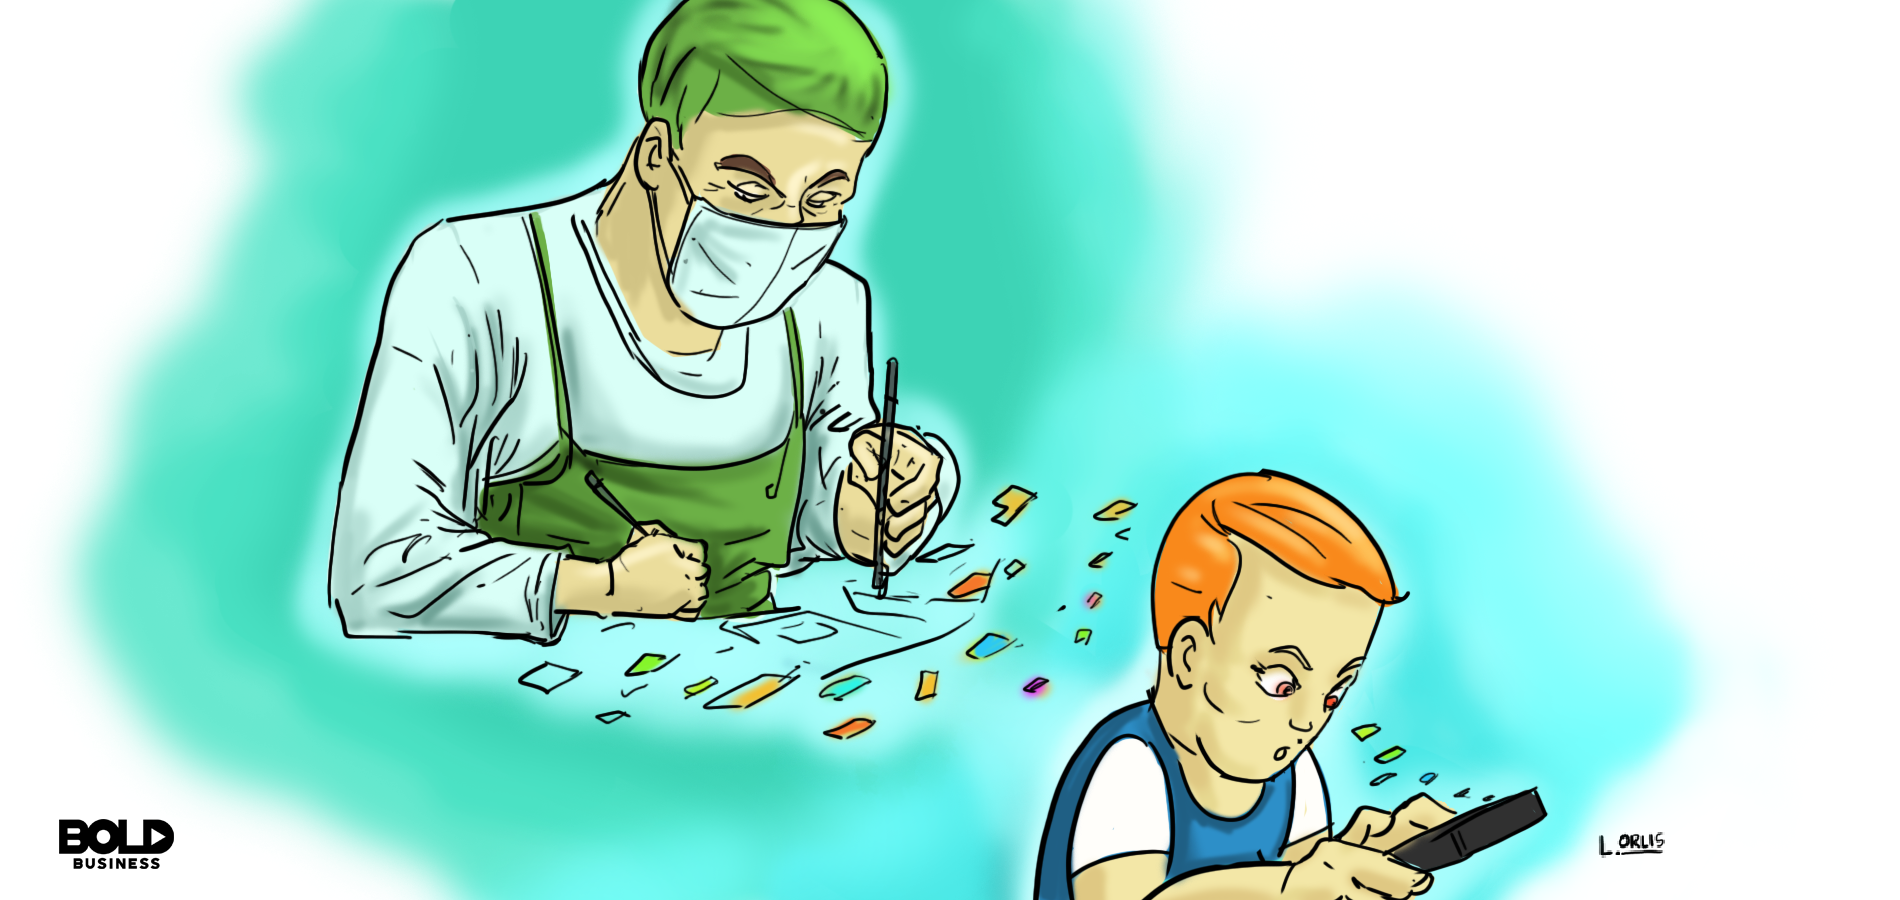 cartoon of an app developer dressed in a surgeon's outfit and mask making a kid-friendly app, and fragments of that app are flying into the screen of a kid playing with that app on his mobile smartphone